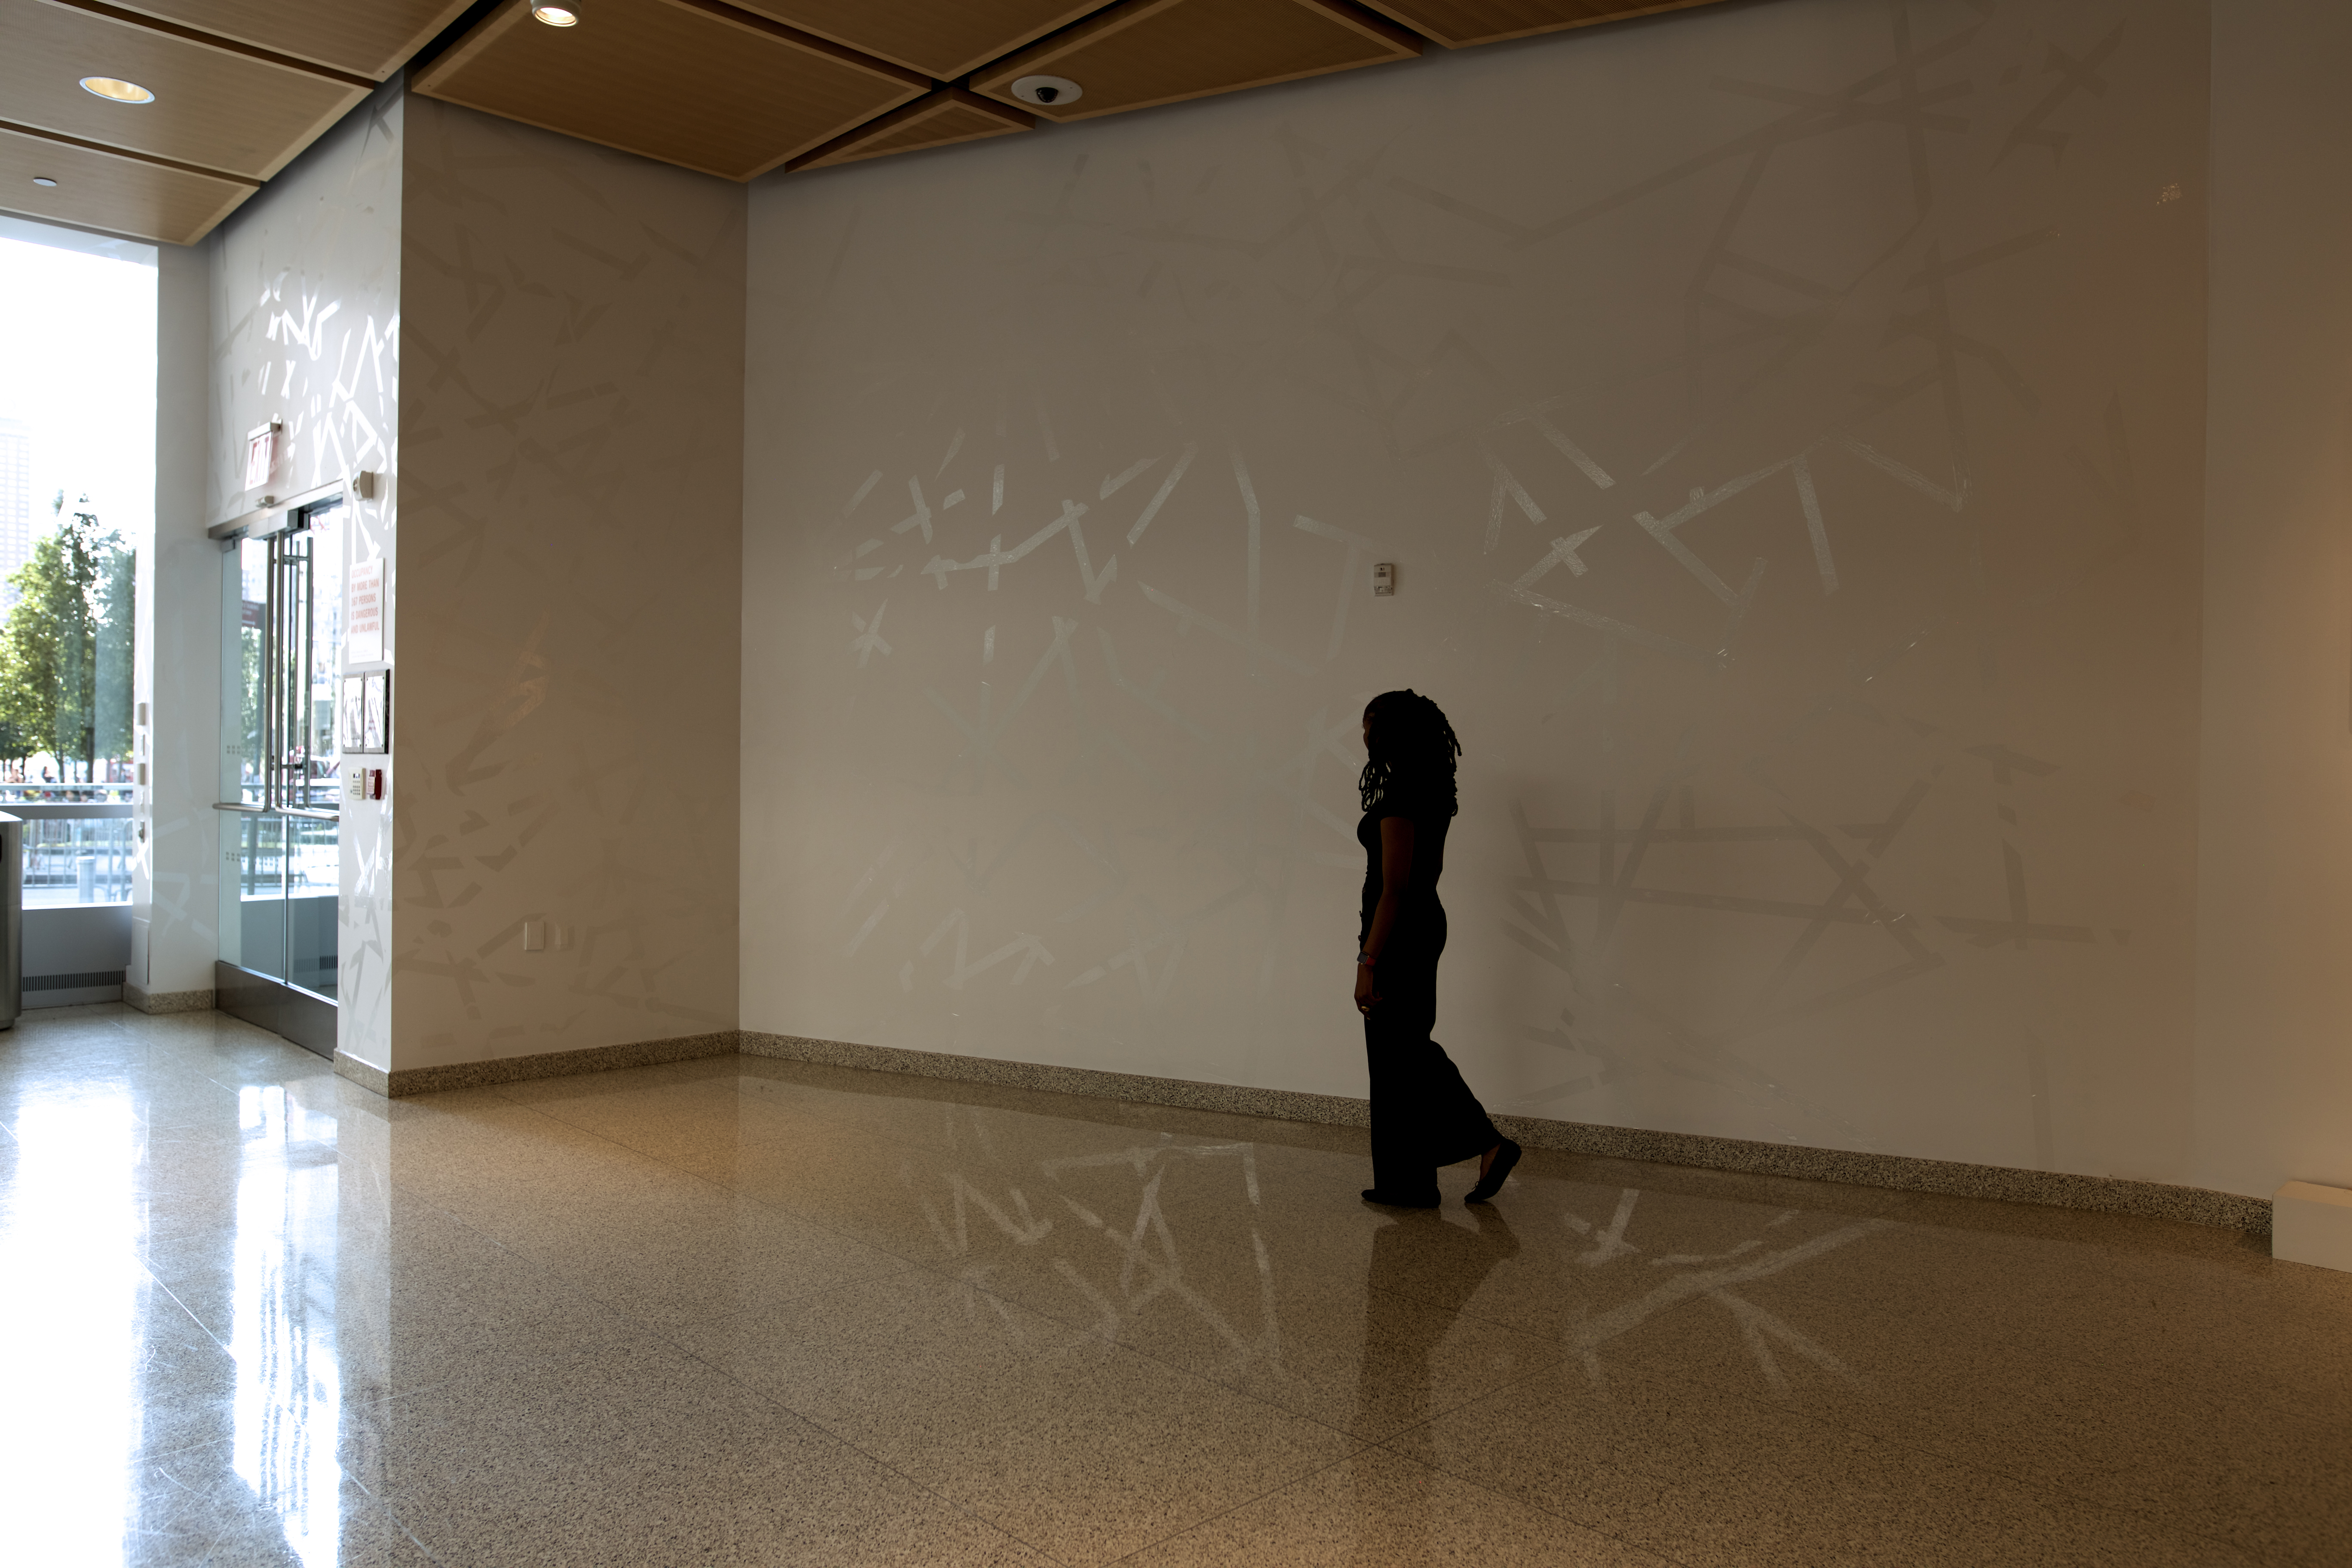 Packing Tape #2, Gesture, at BMCC Shirley Fiterman Gallery